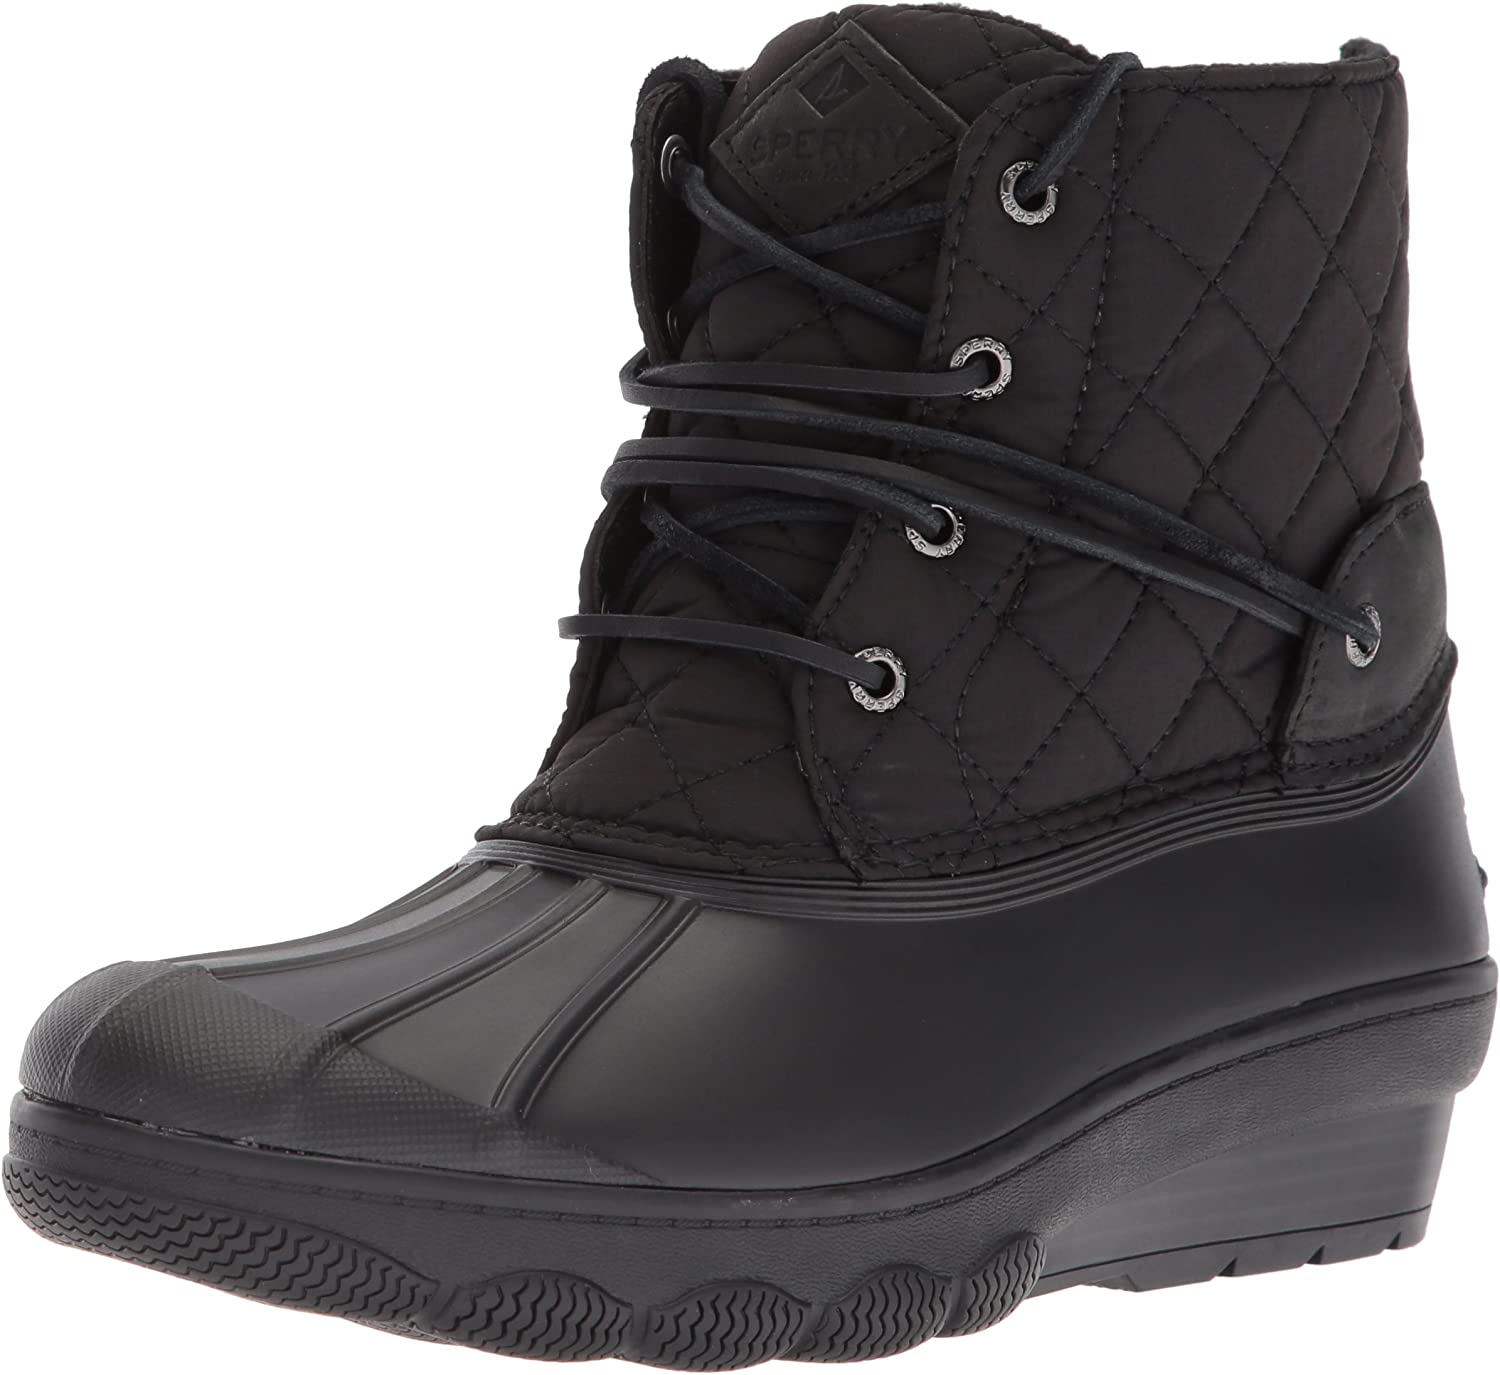 Sperry Womens Saltwater Wedge Tide Quilted Rain Boot